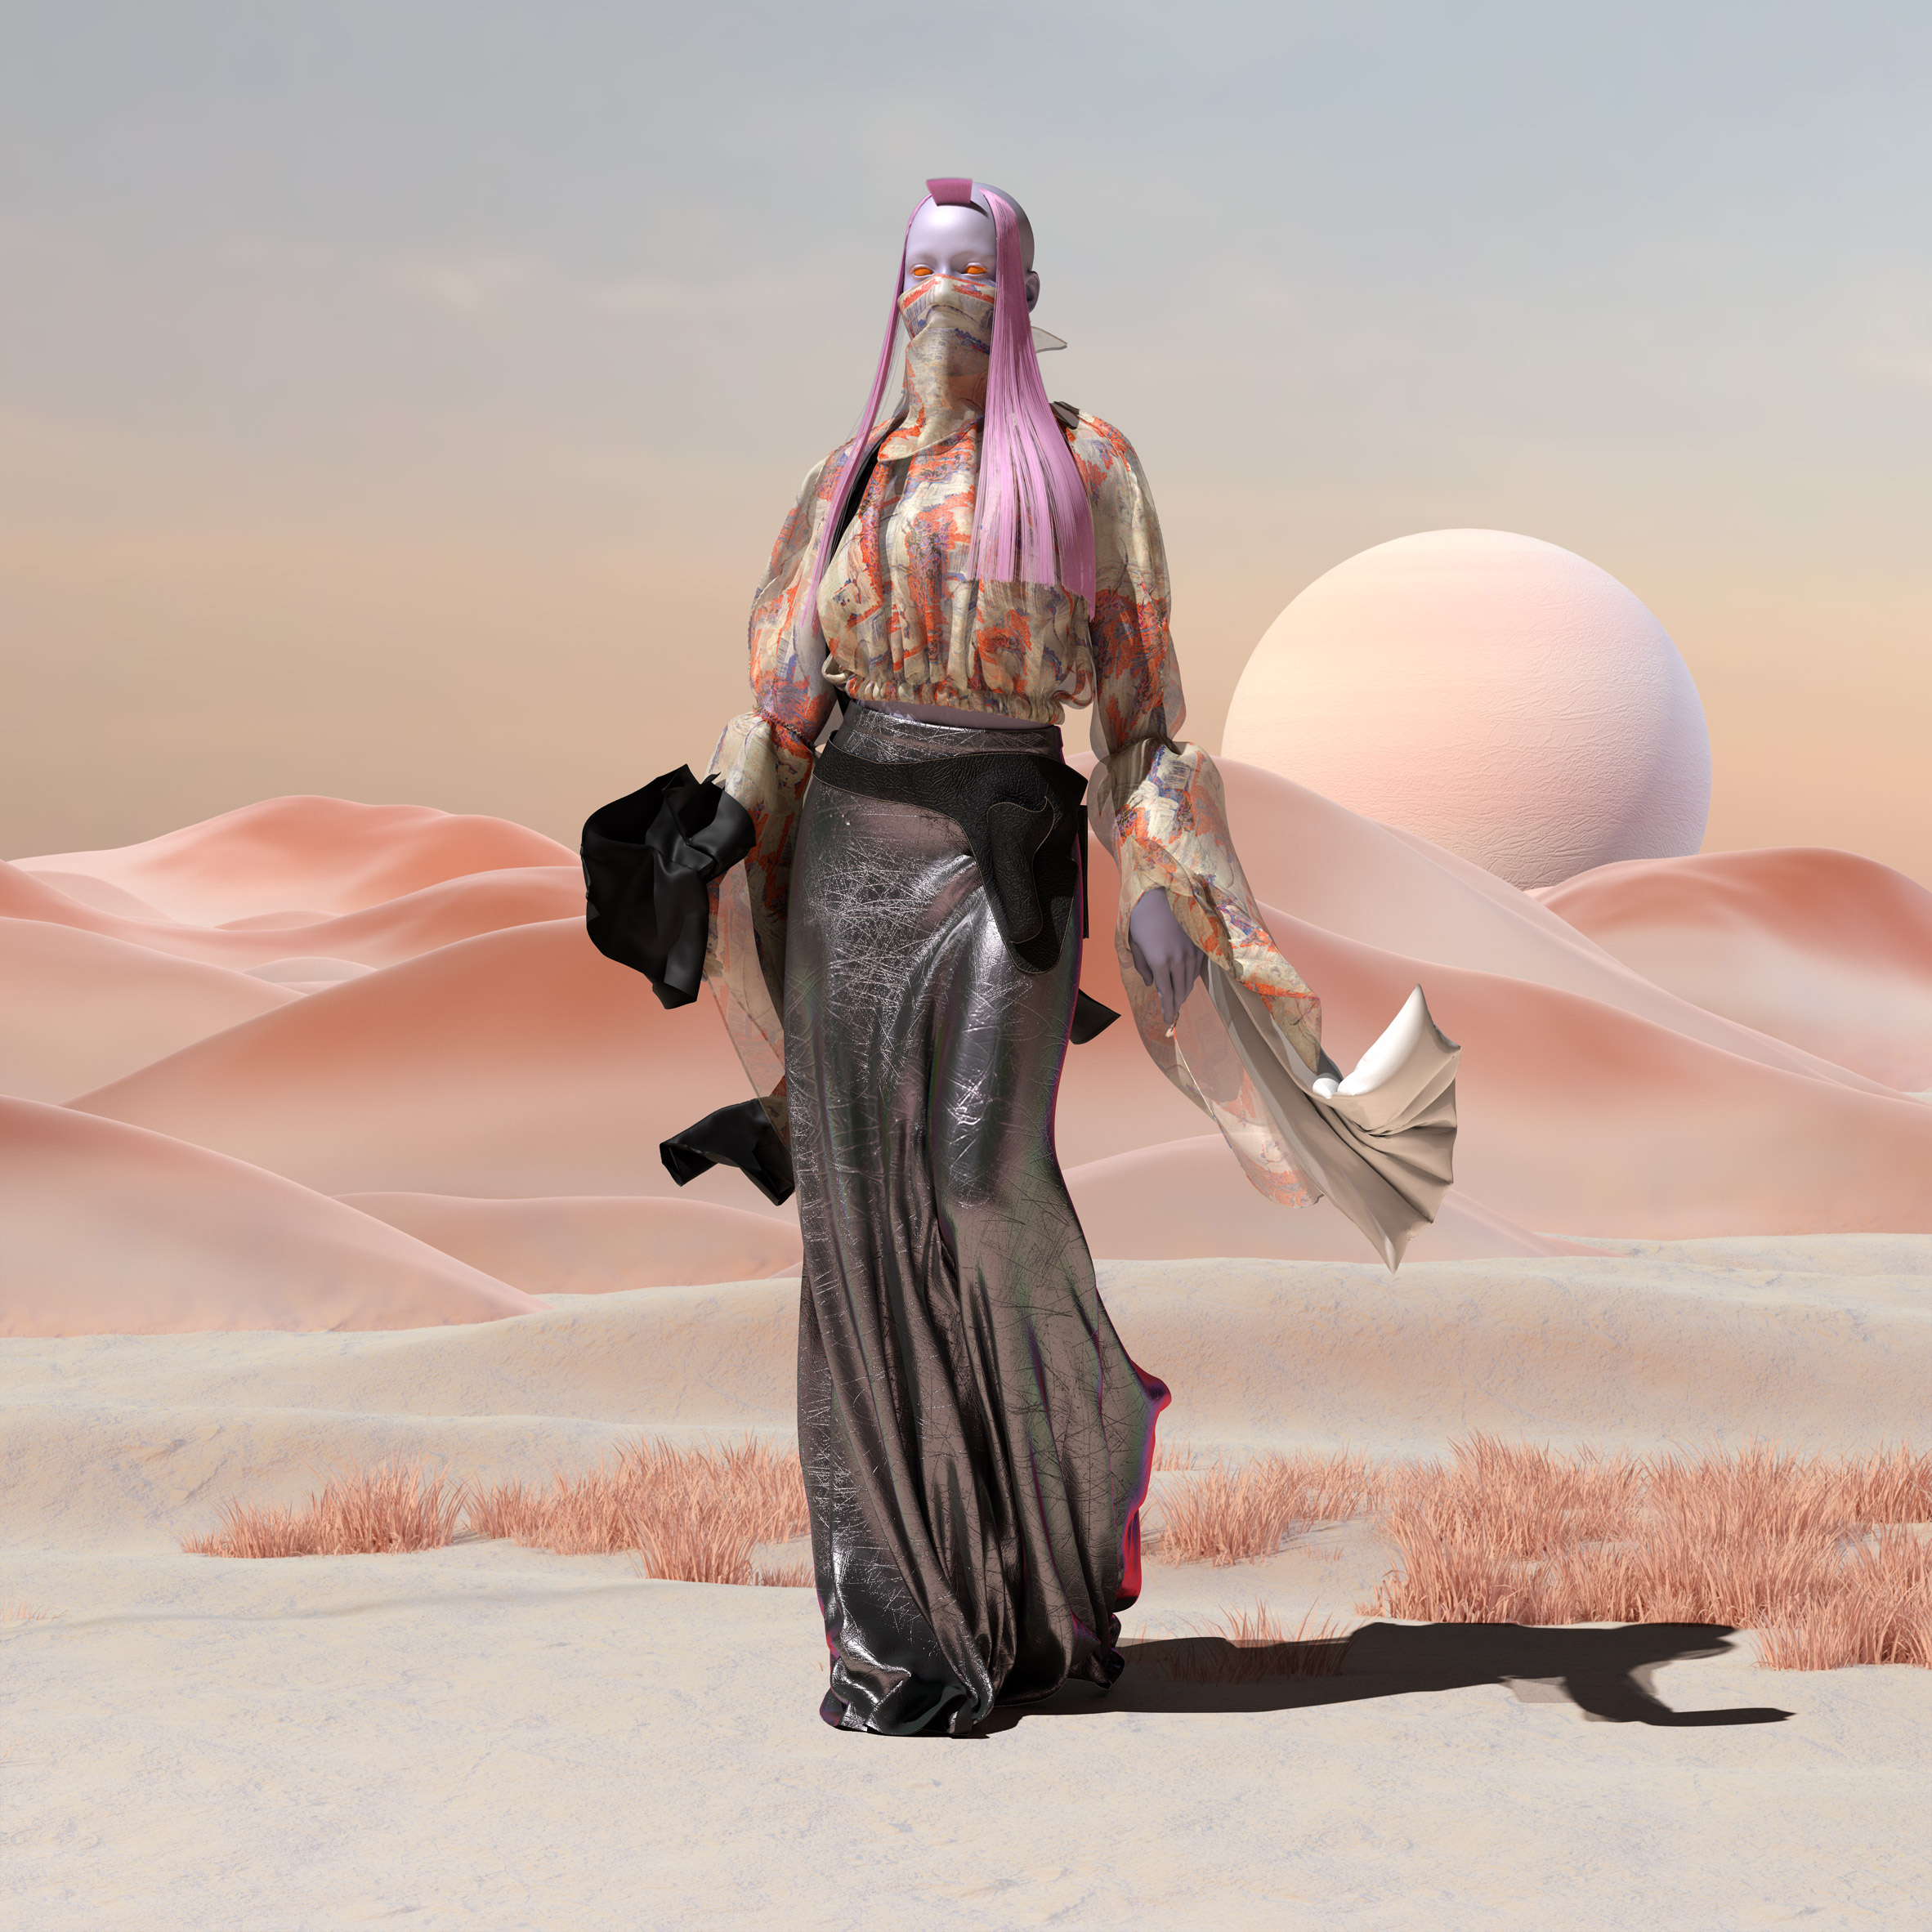 Virtual fashion by The Fabricant